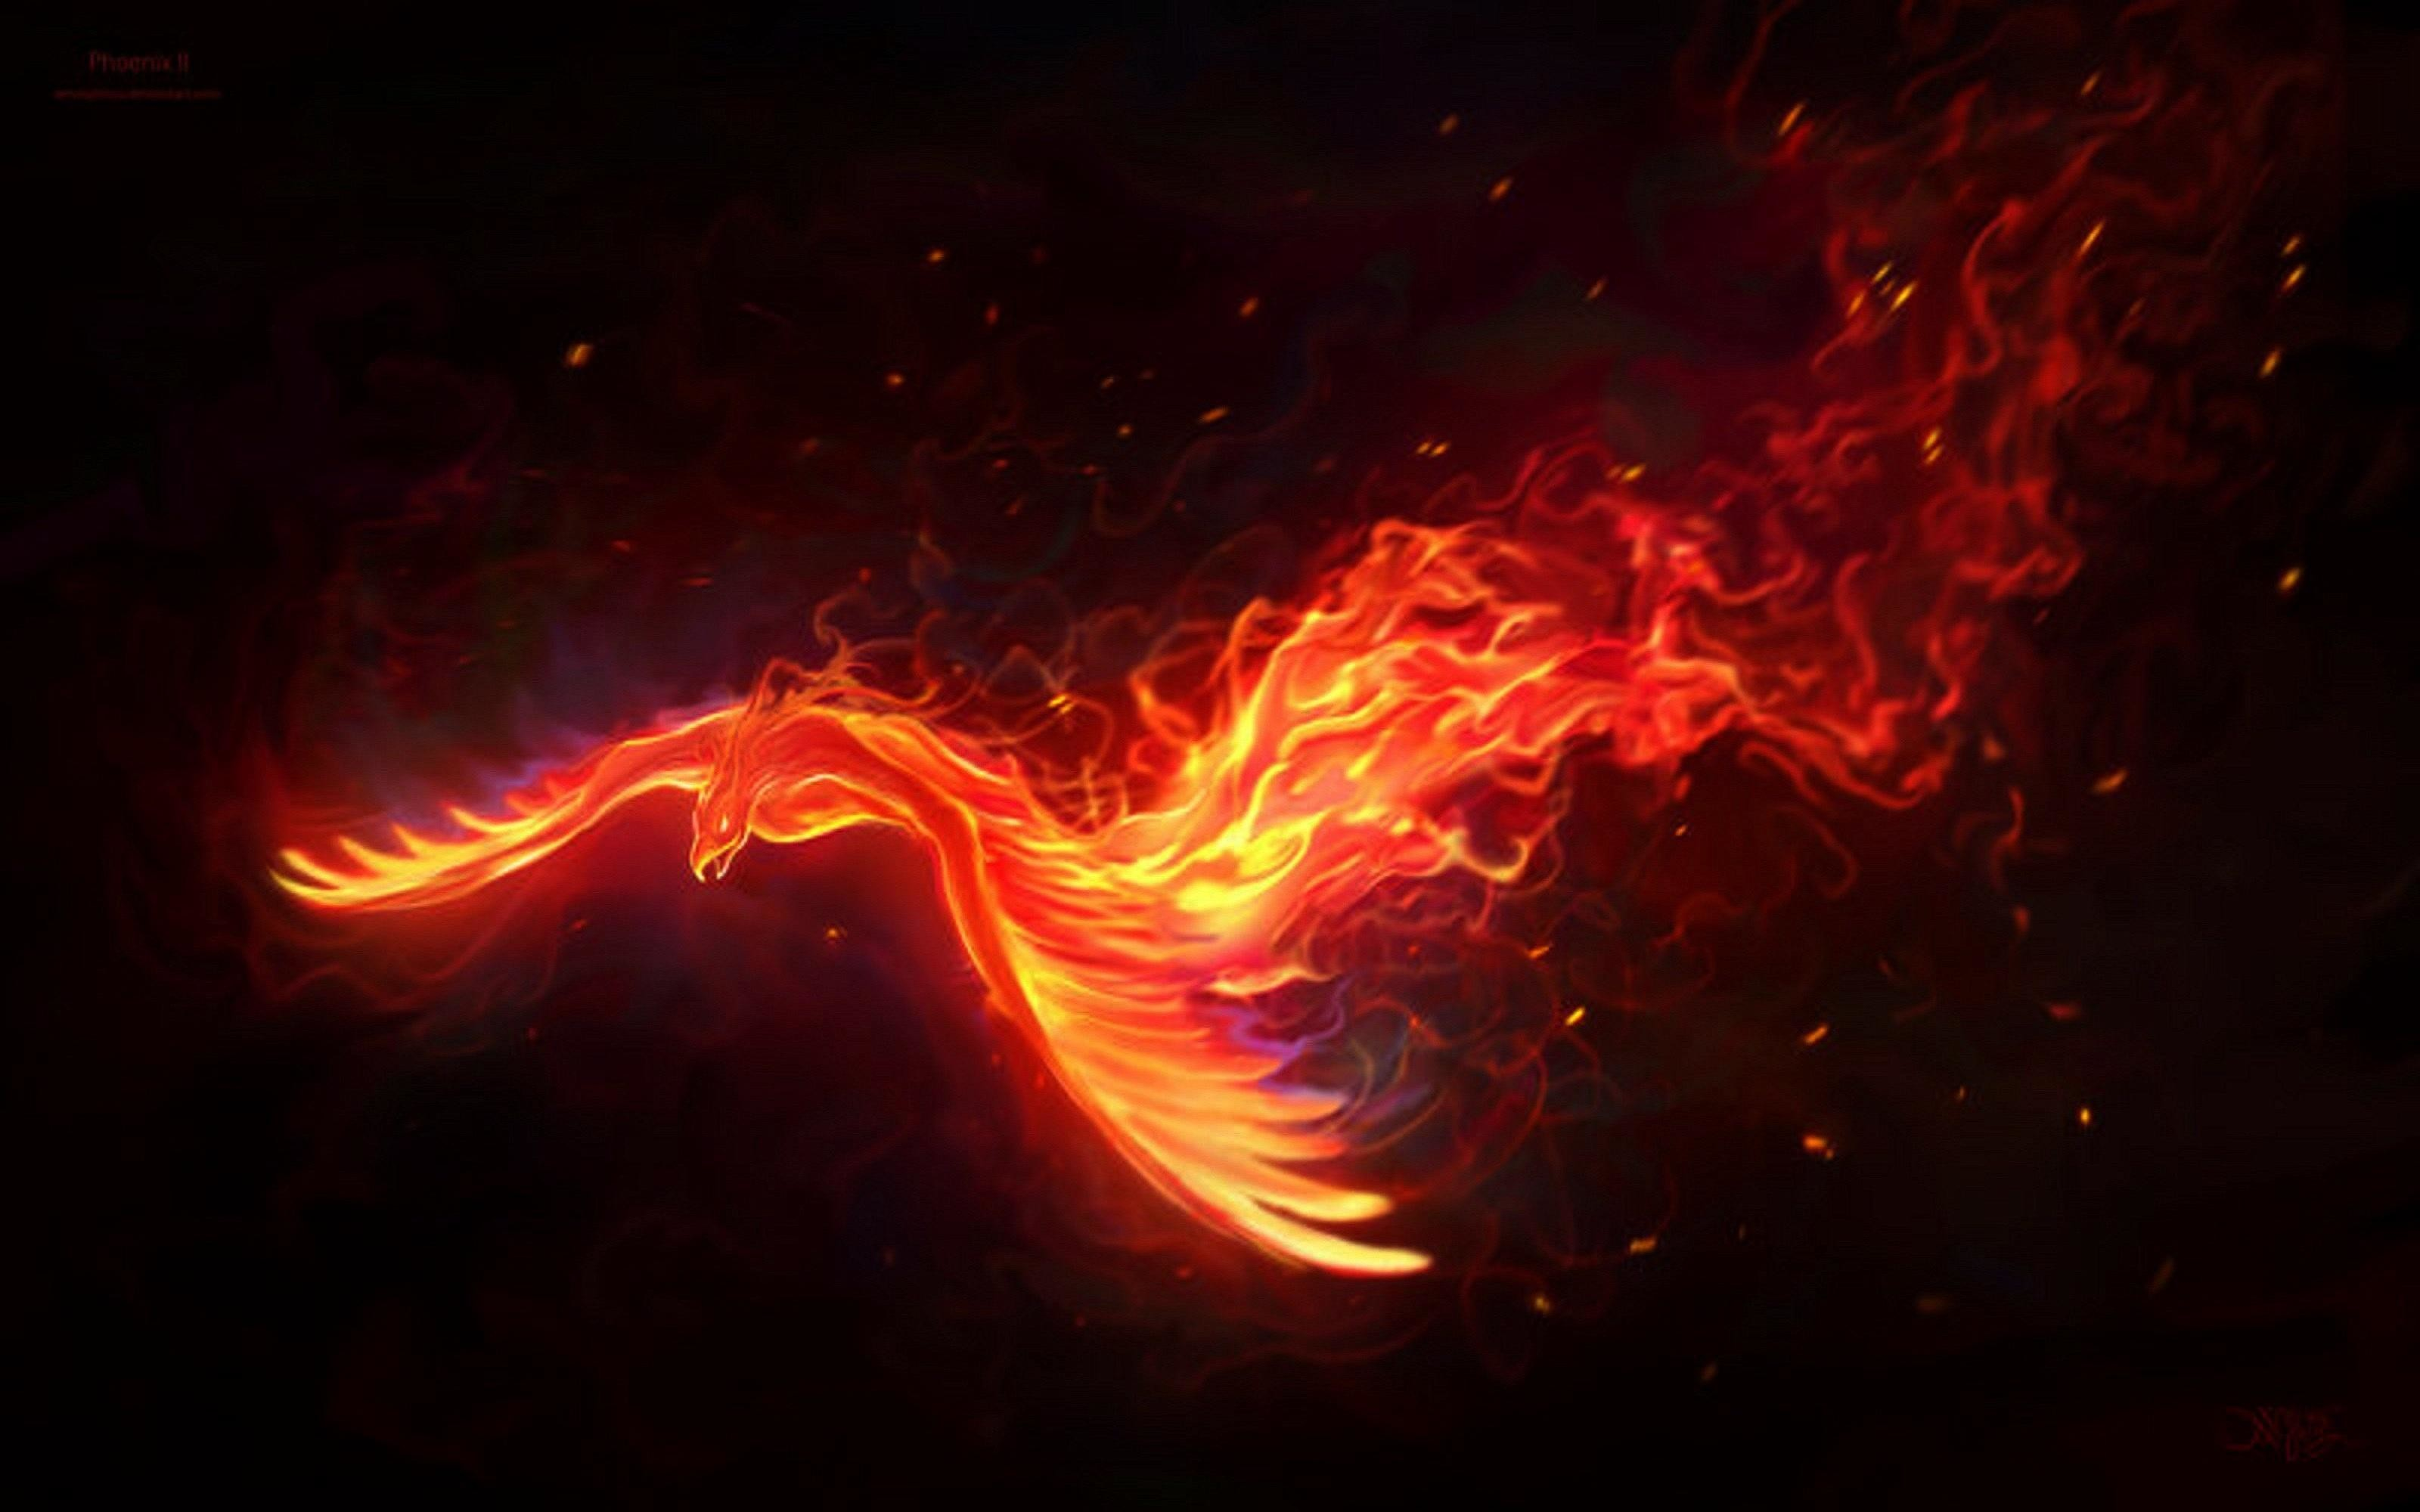 3200x2000 wallpaper.wiki-Phoenix-Bird-Desktop-Background-PIC-WPD007758